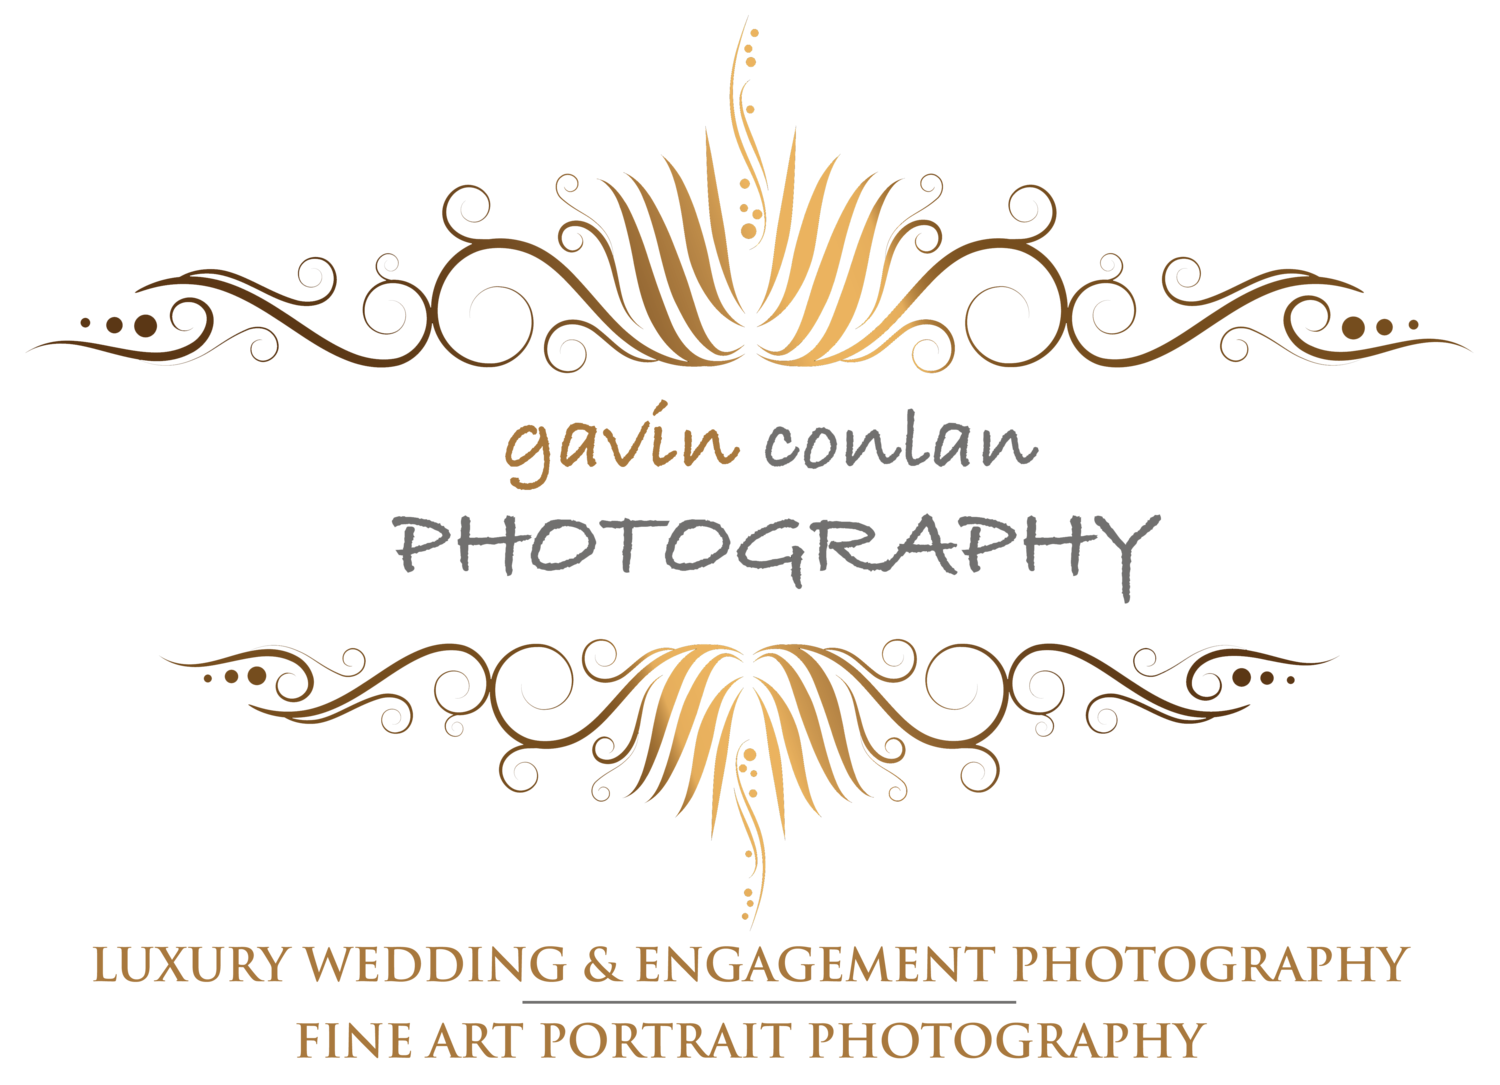 gavin conlan photography Ltd | JOURNAL